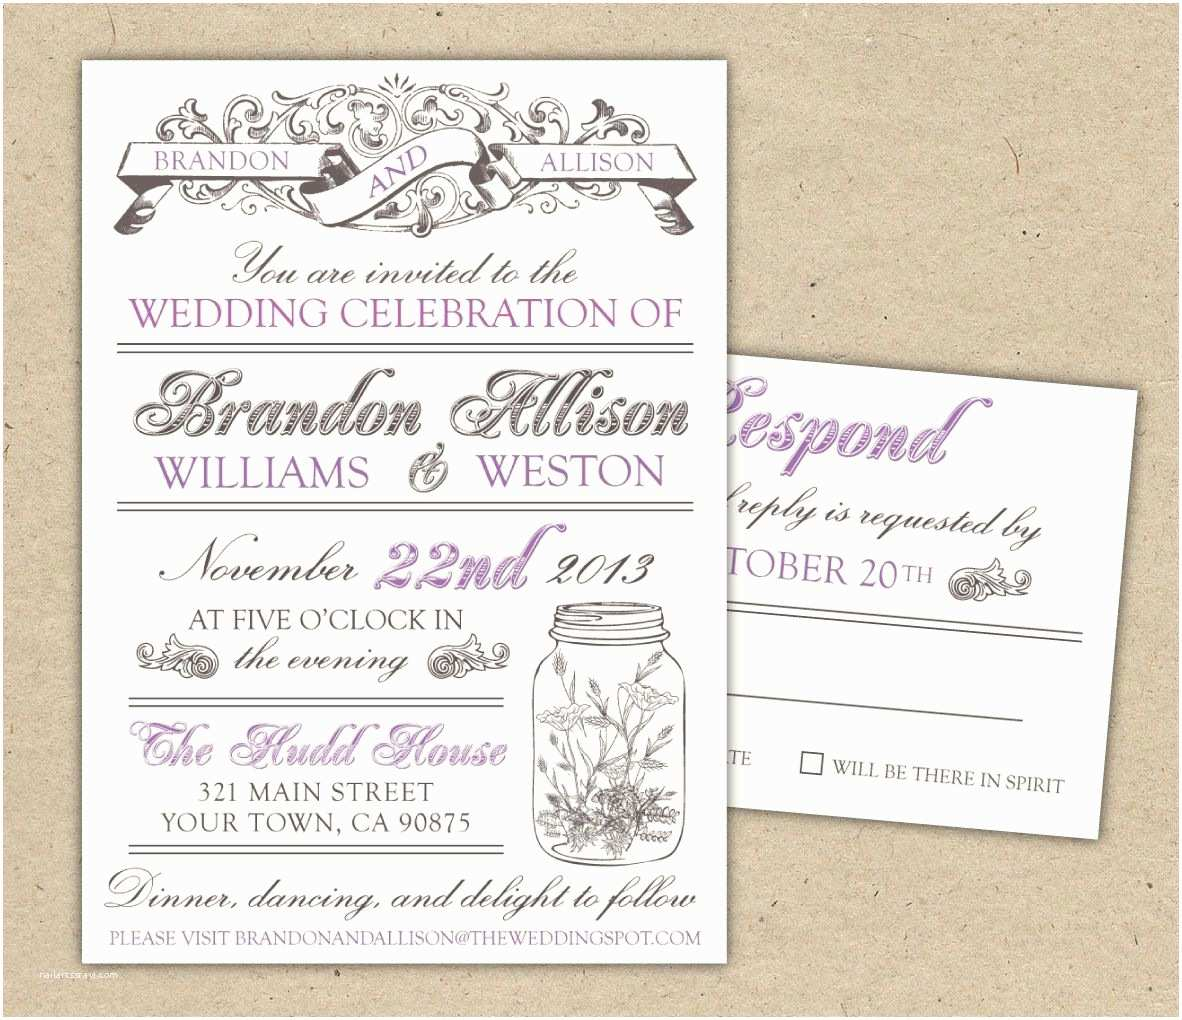 Wedding Invite Directions Template Free Templates for Invitations